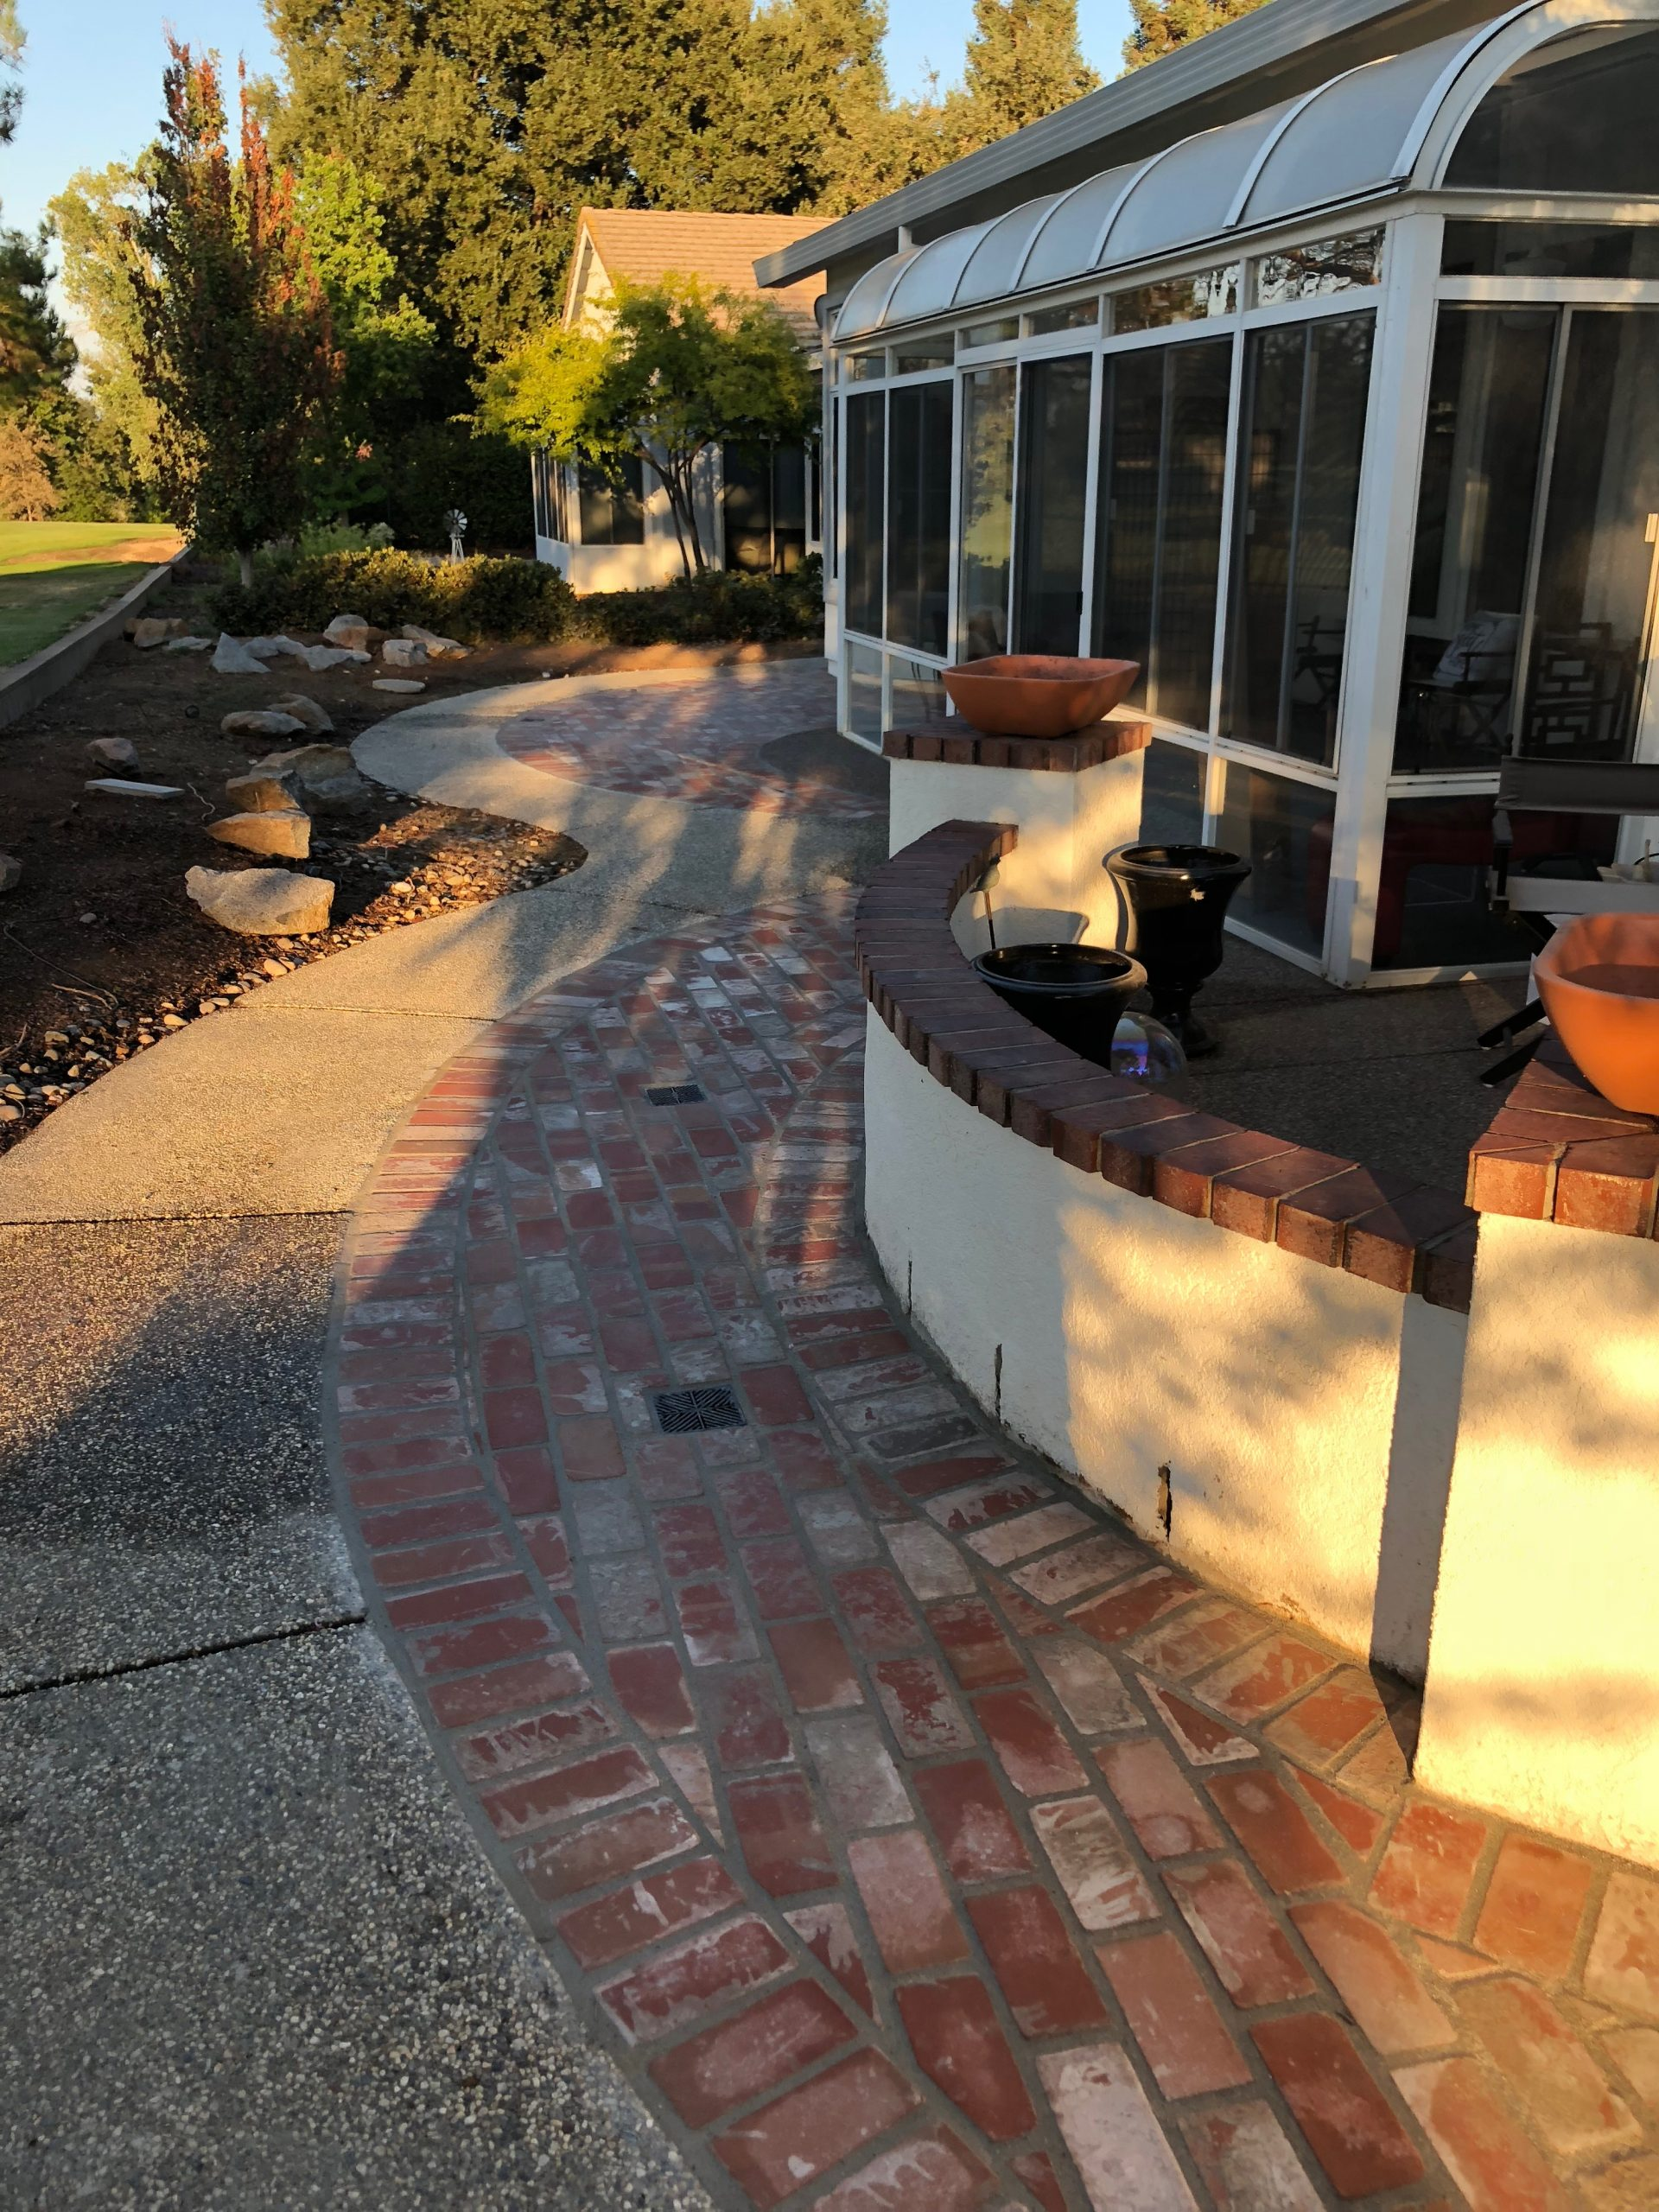 An image of finished brick paver works in San Ramon.